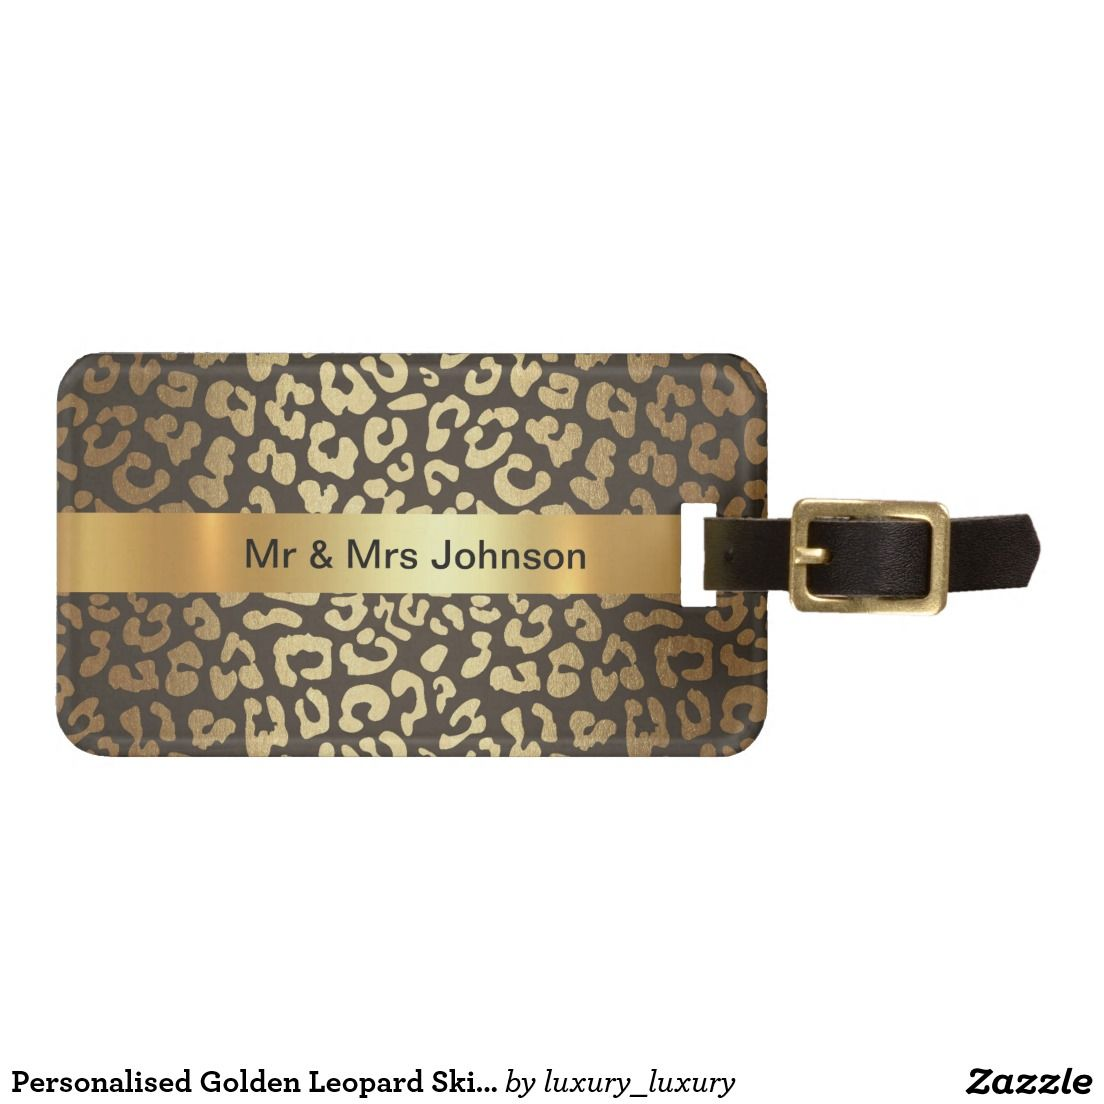 Personalised Golden Leopard Skin Luggage leather Luggage Tag ...